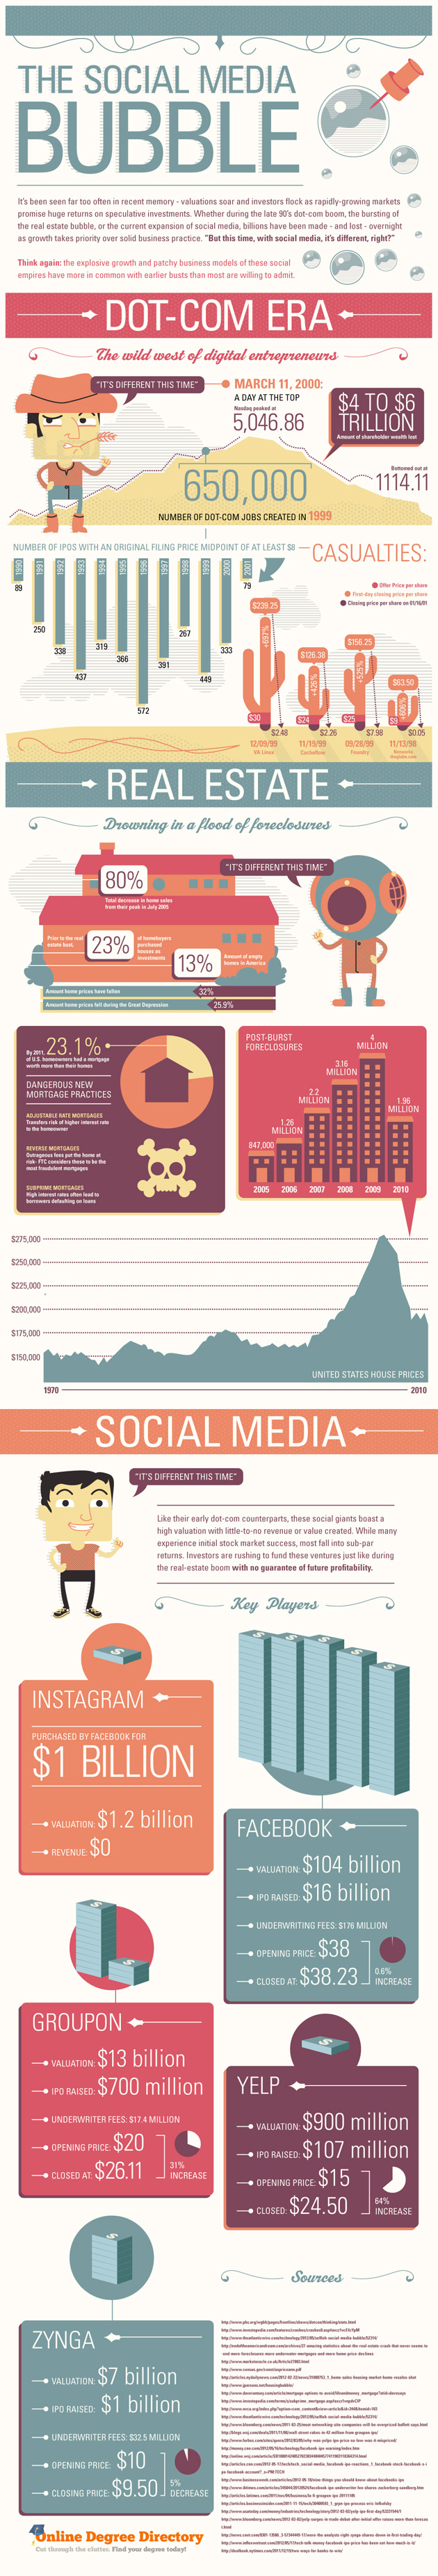 Social Media Bubble Infographic